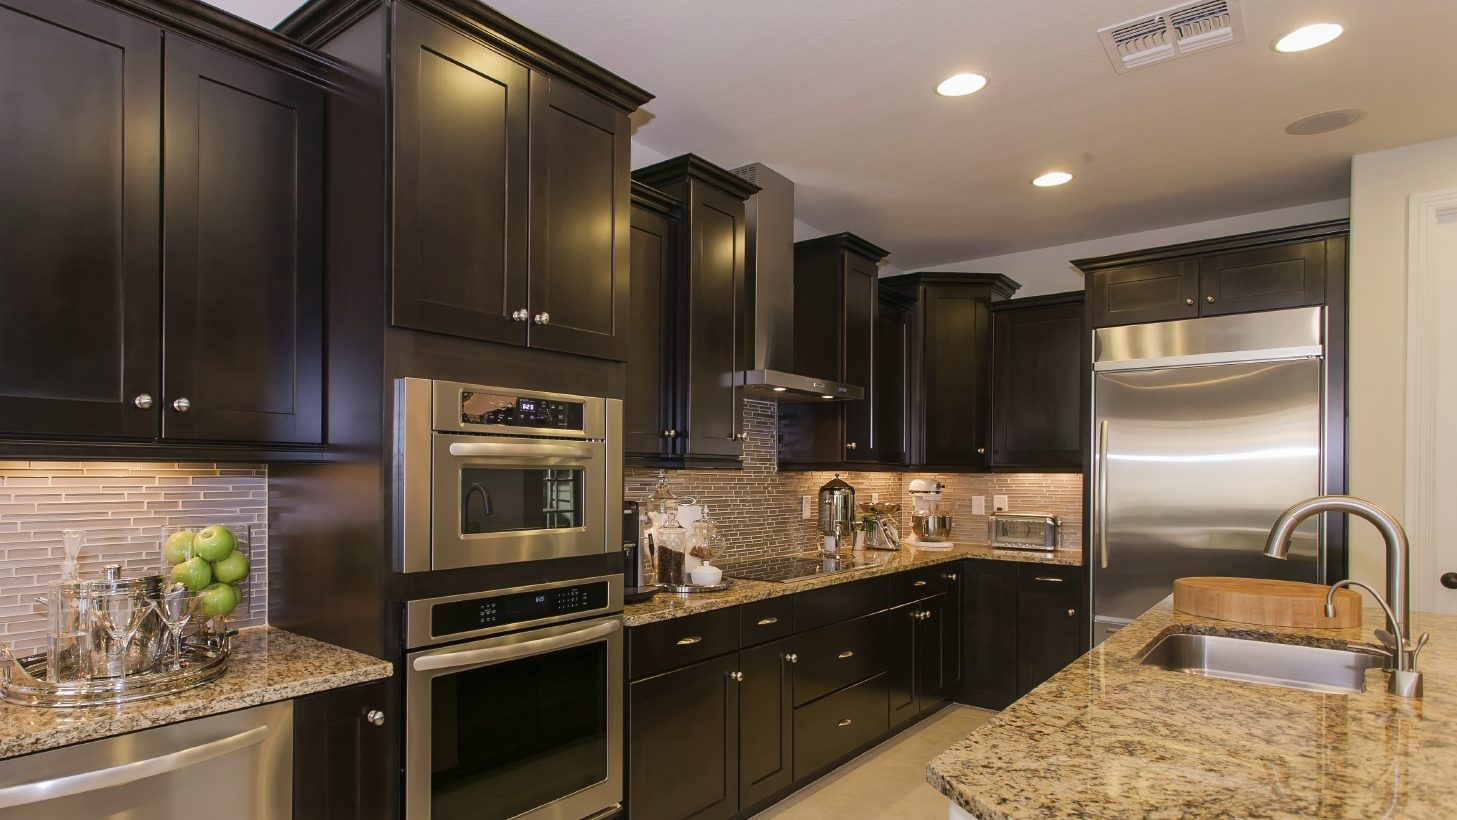 Easy Cleaning Tips to Maintain Your Stove and Oven